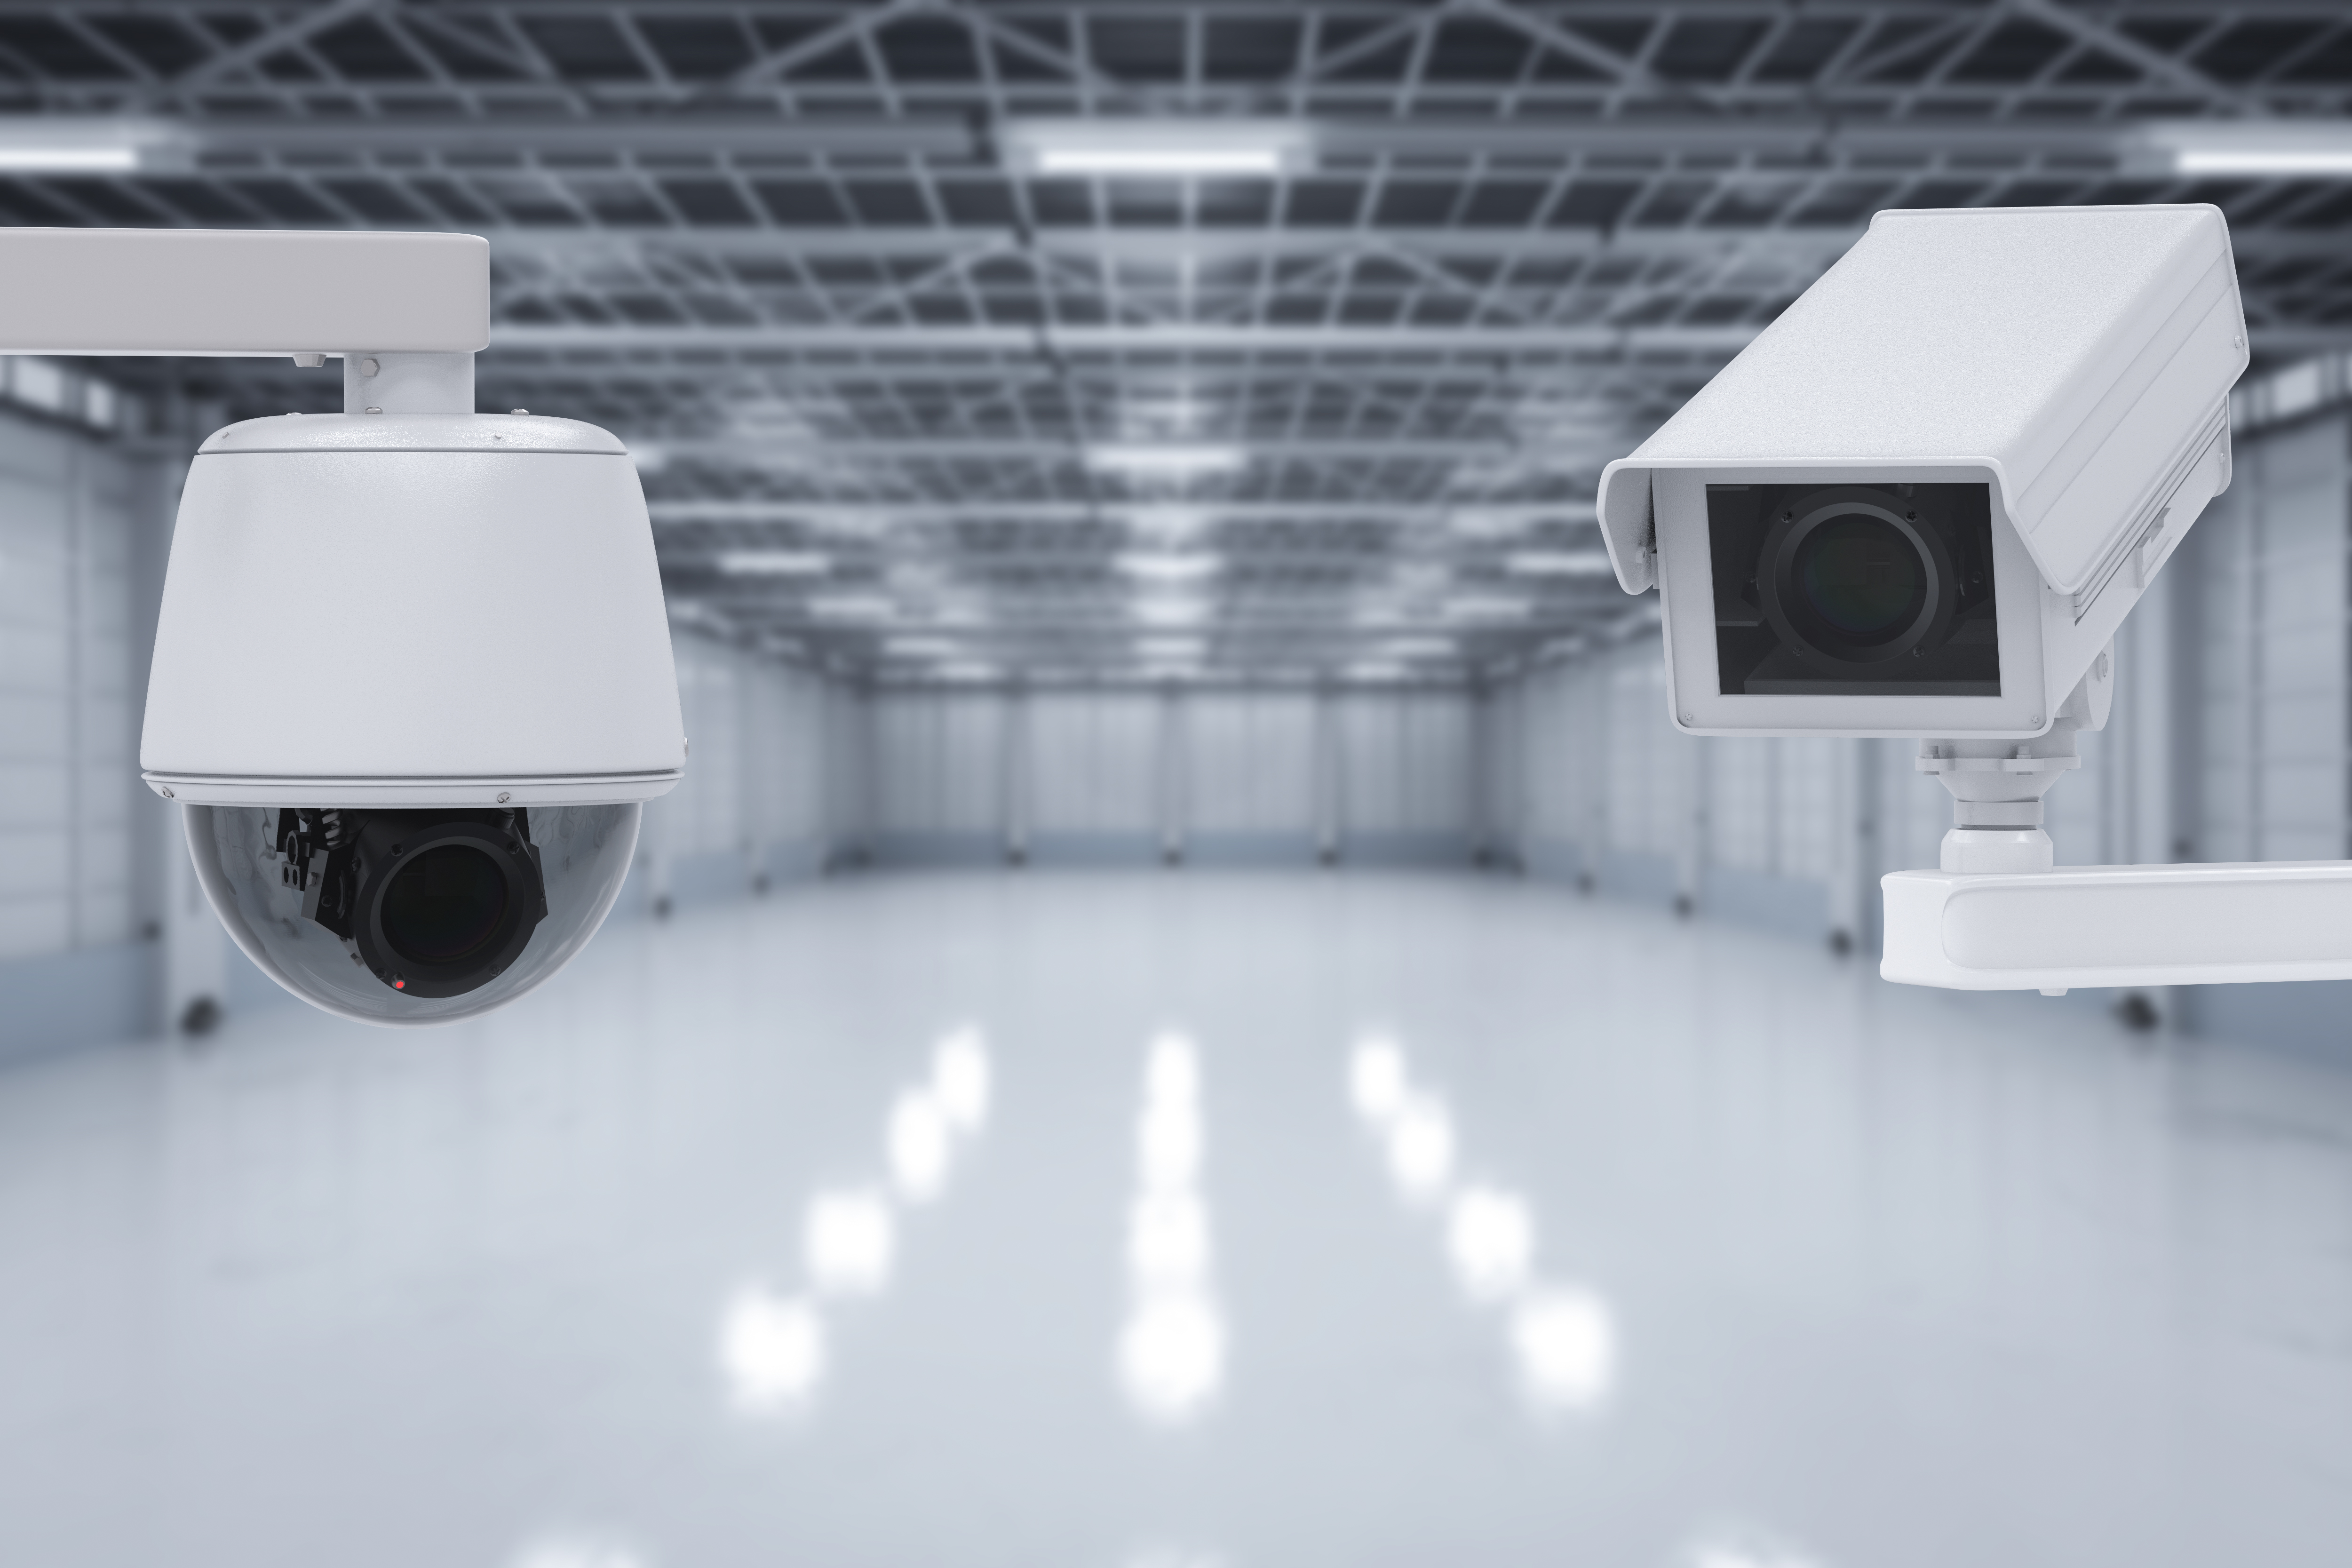 What Equipment We Need For Video Surveillance In Office?